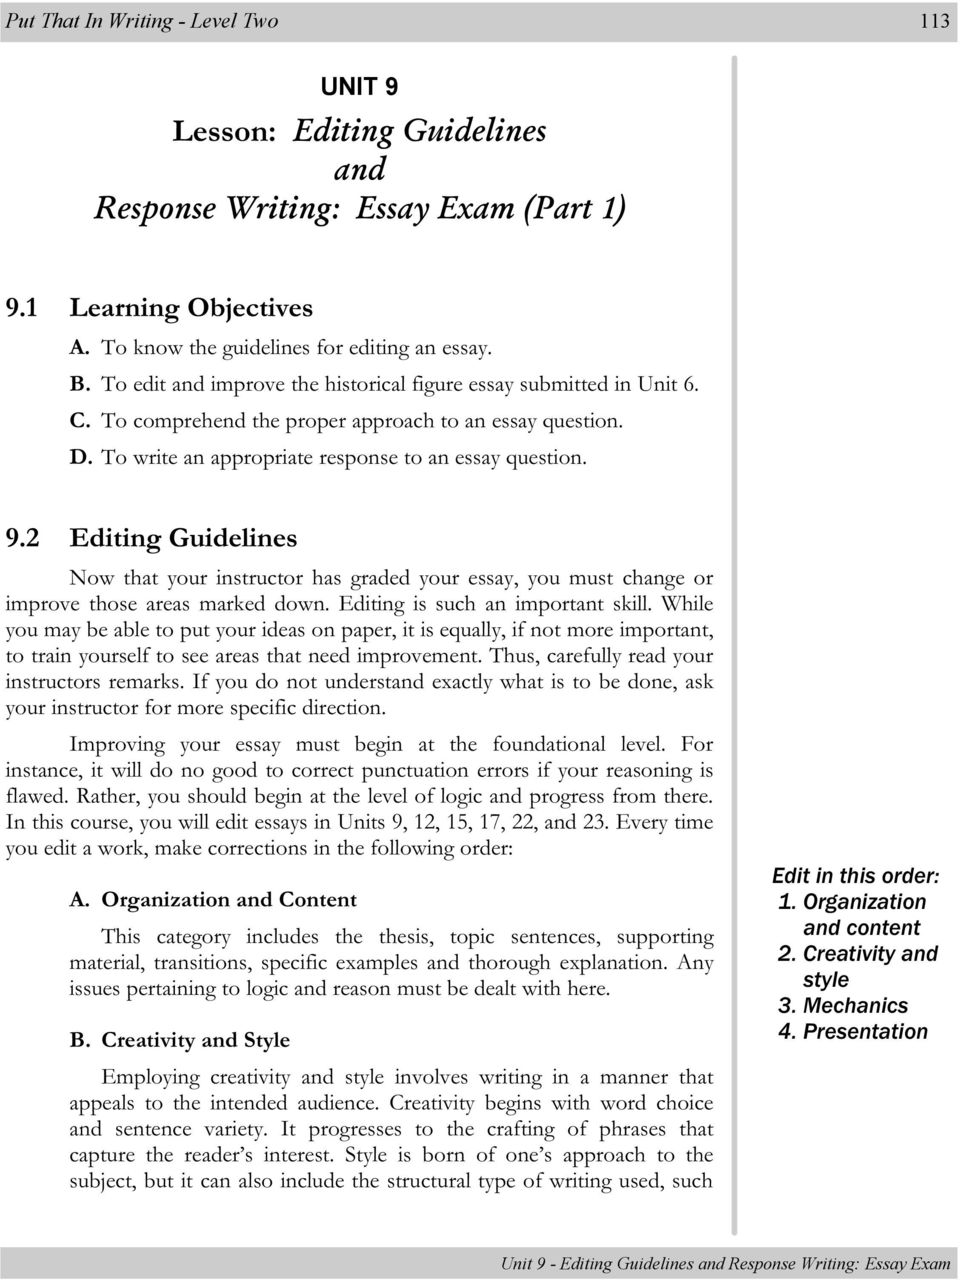 2 Editing Guidelines Now that your instructor has graded your essay, you must change or improve those areas marked down. Editing is such an important skill.